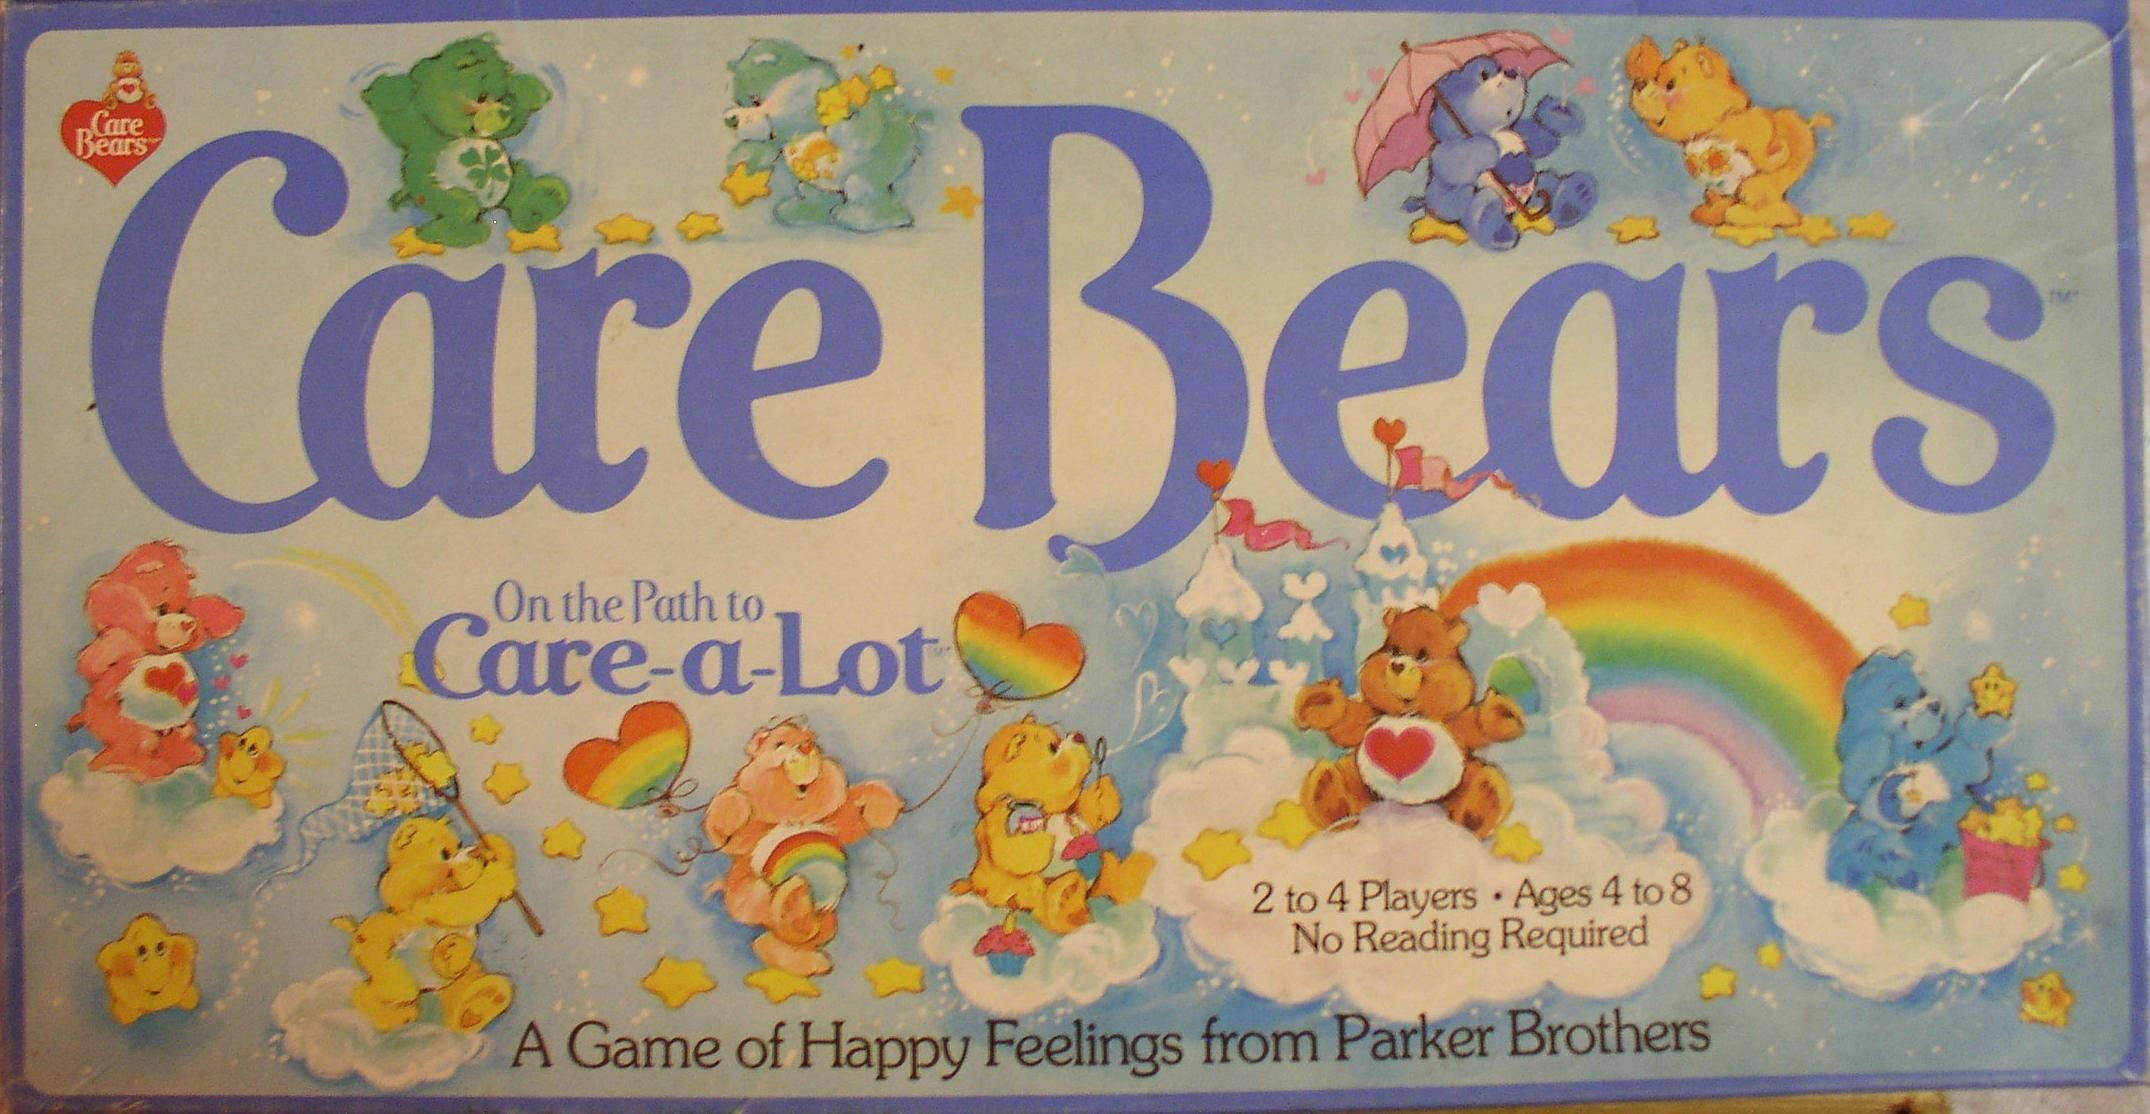 Care Bears: On the Path to Care-a-Lot